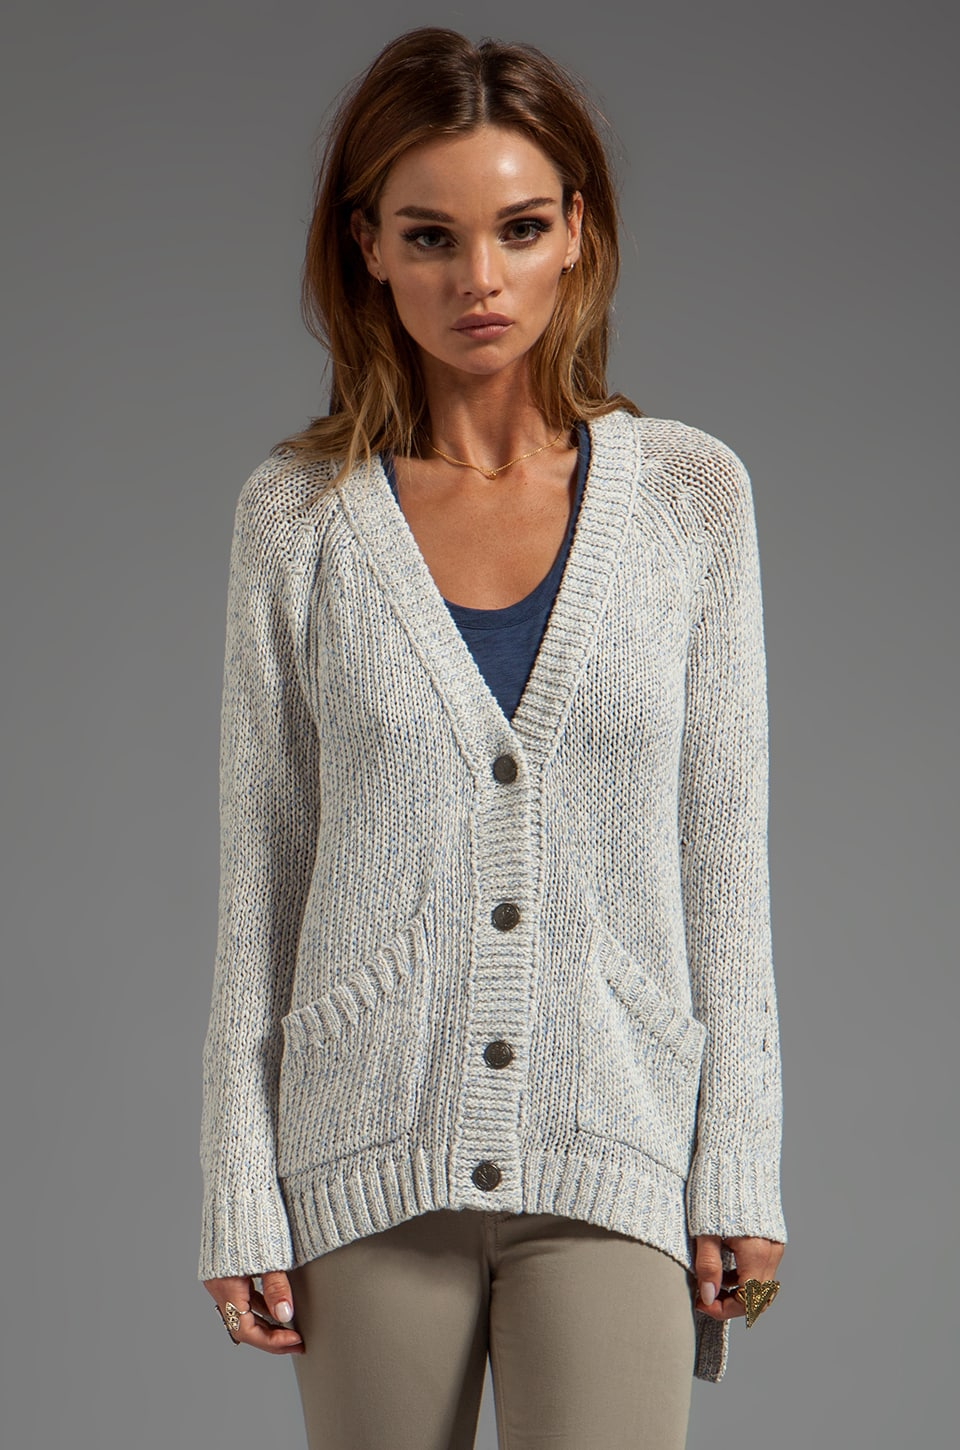 rag & bone/JEAN Candace Cardigan in Ivory/Lavender